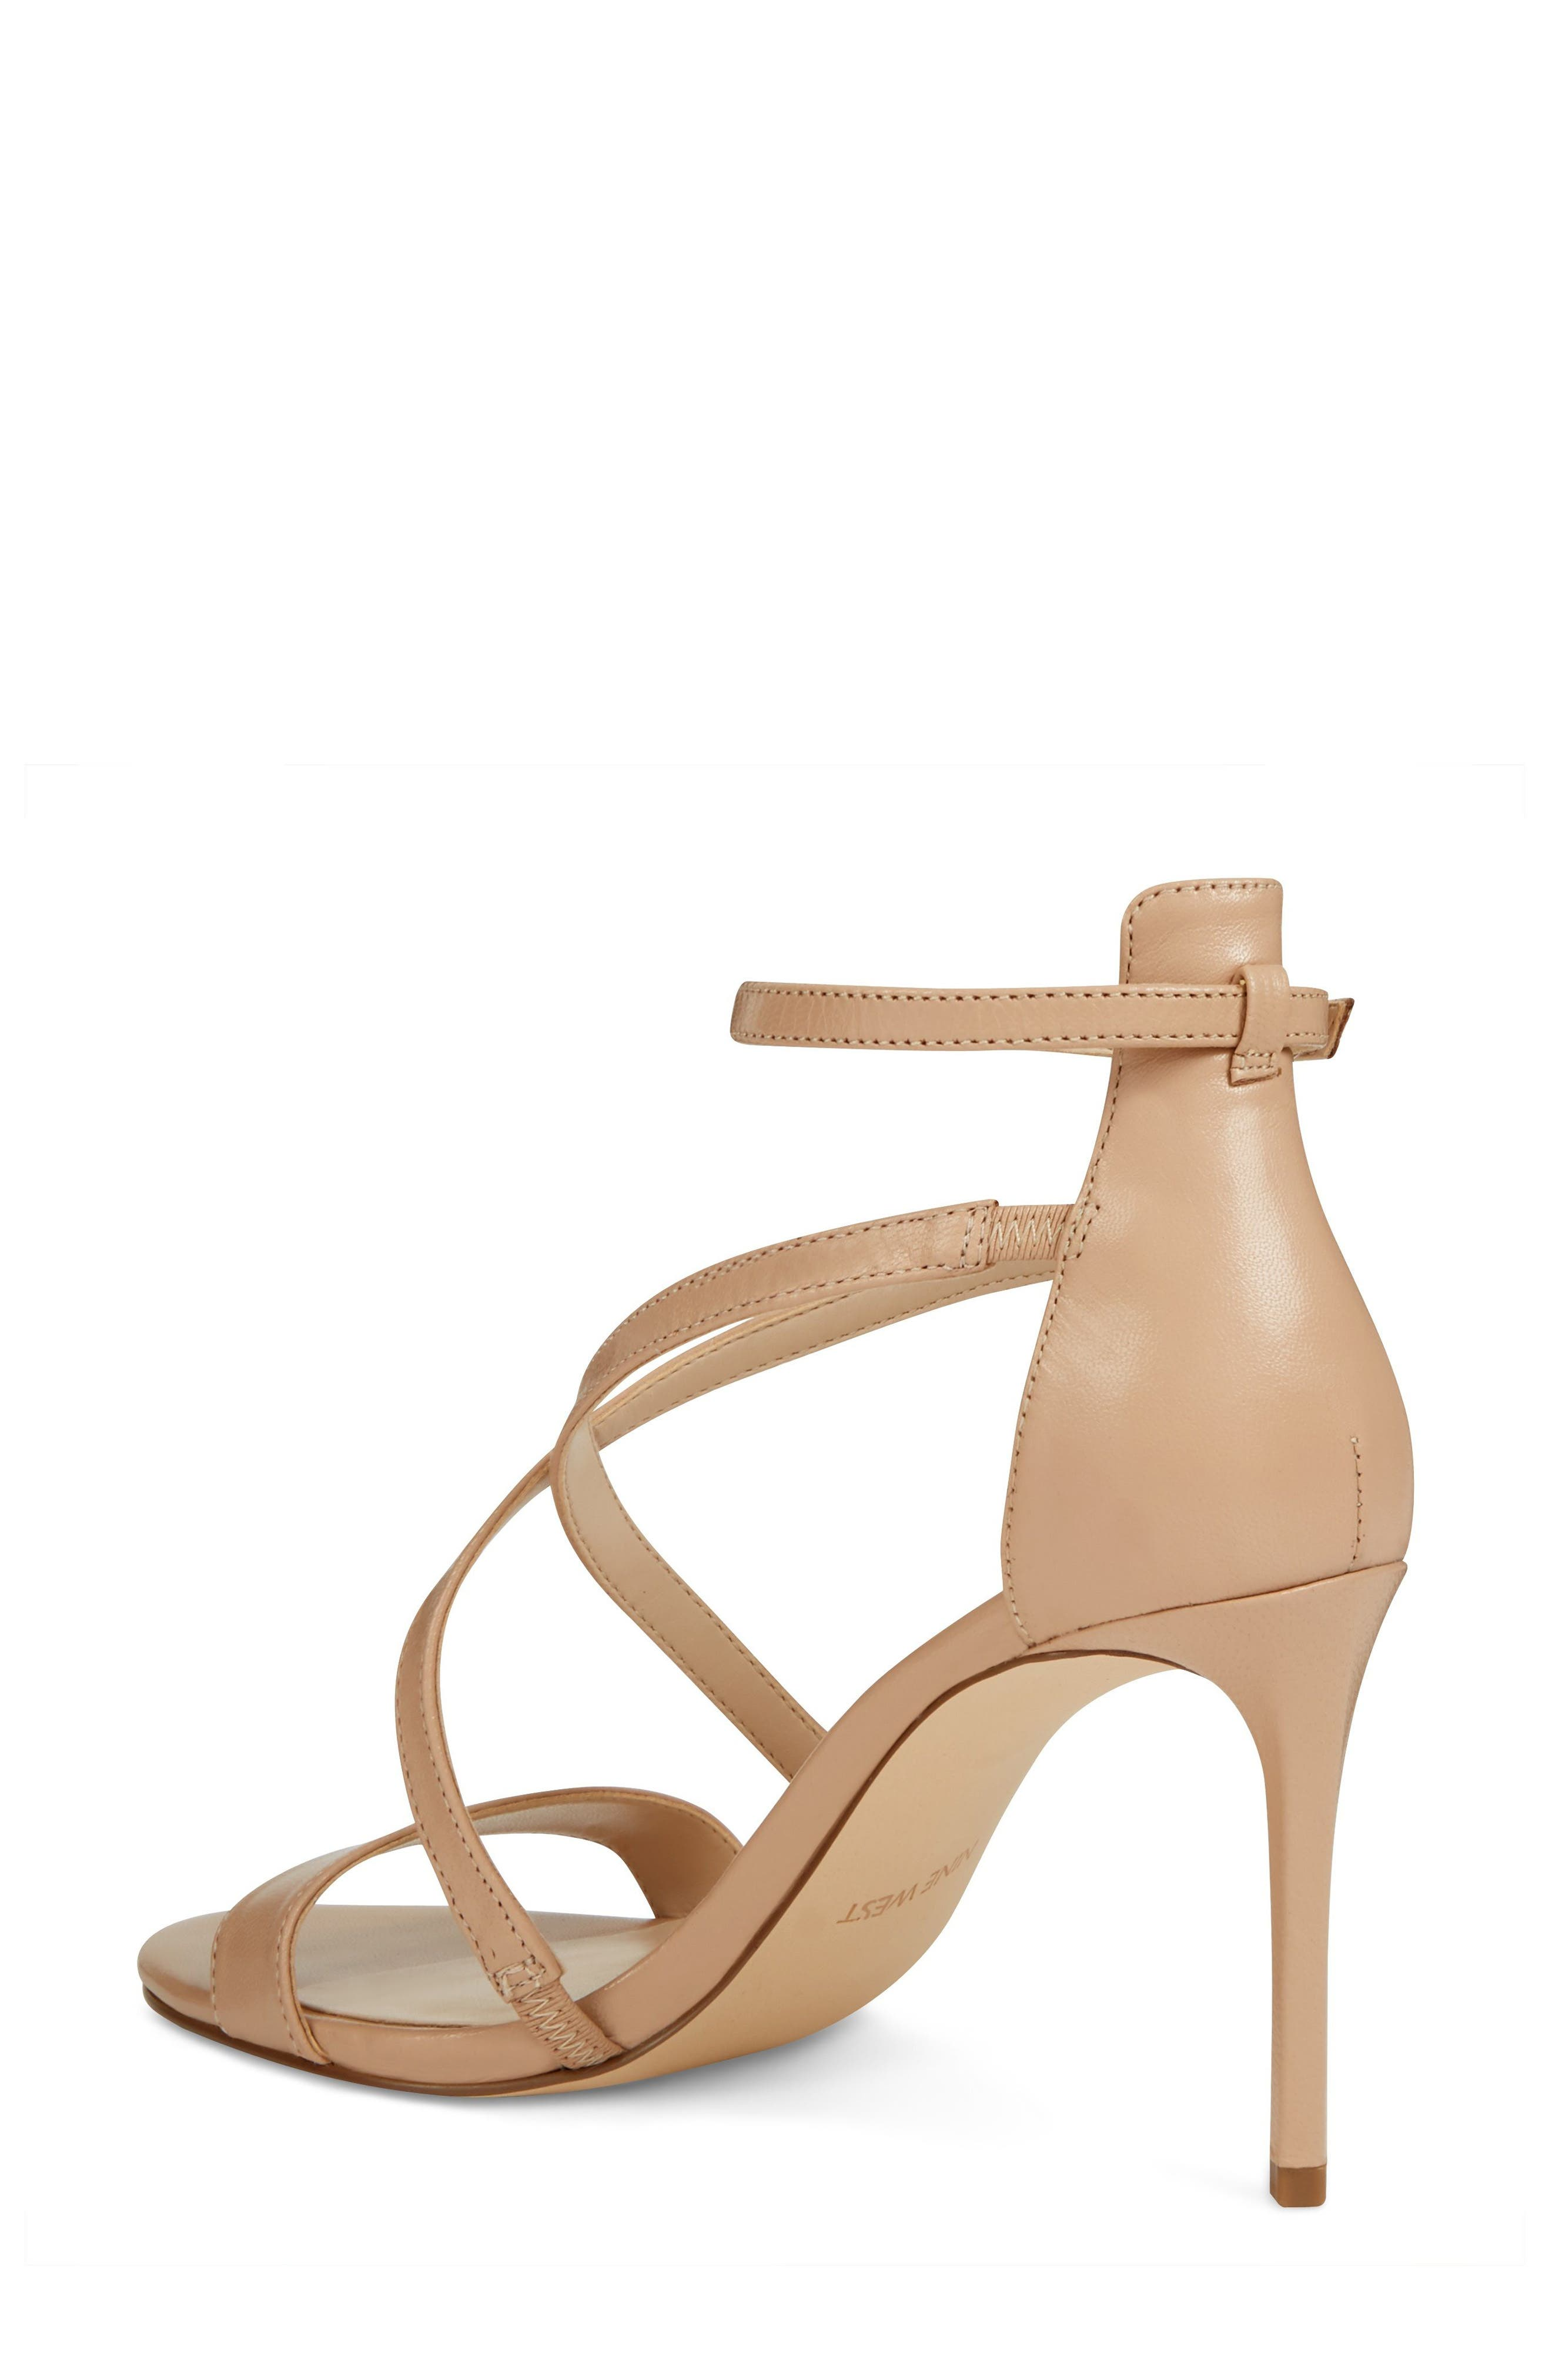 Retail Therapy Strappy Sandal,                             Alternate thumbnail 2, color,                             Natural Leather